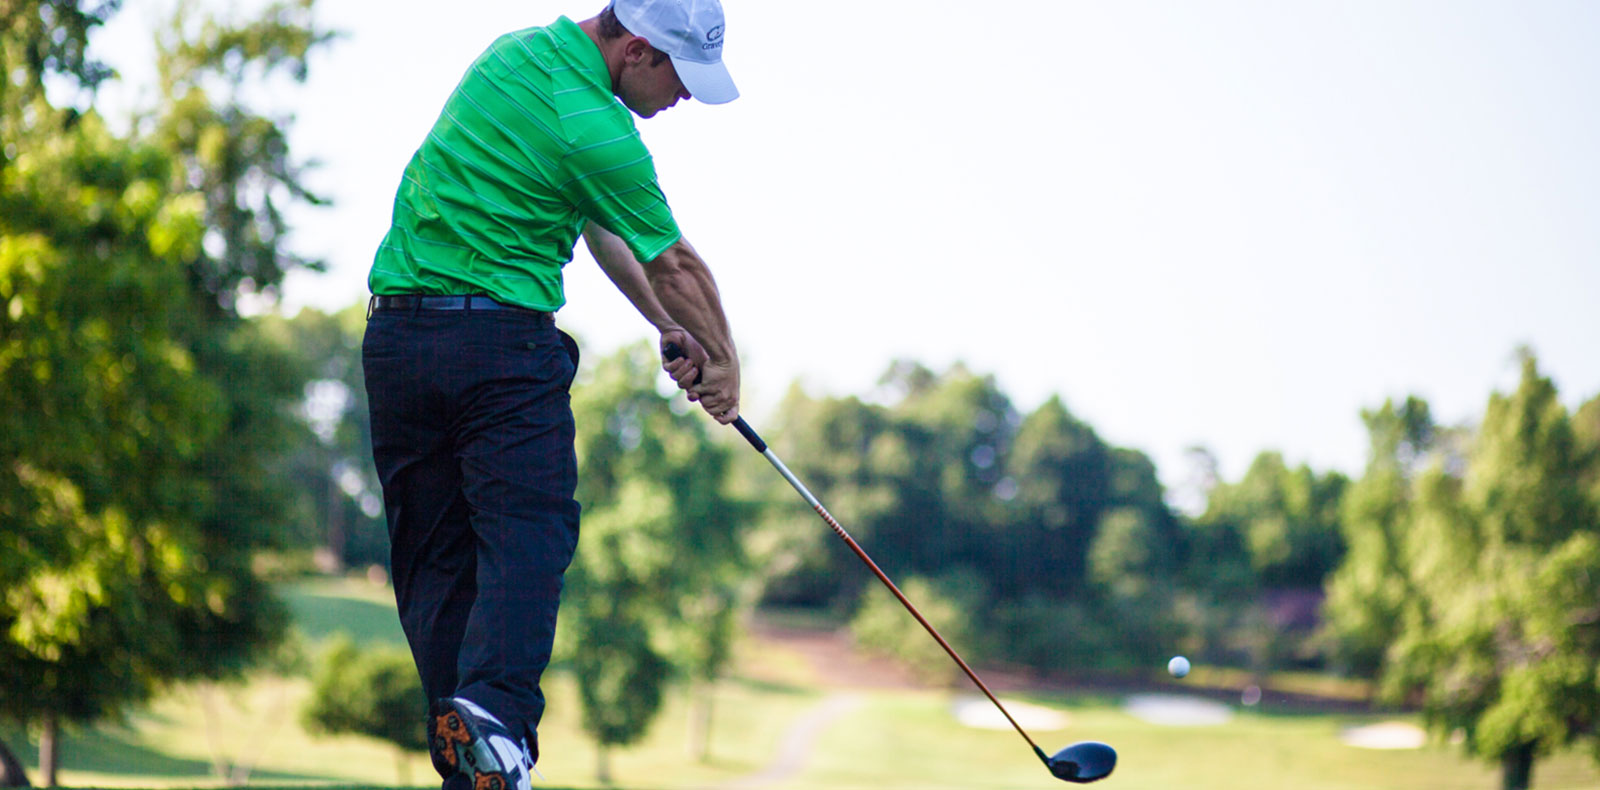 An example of impact using a Gravity Golf Swing